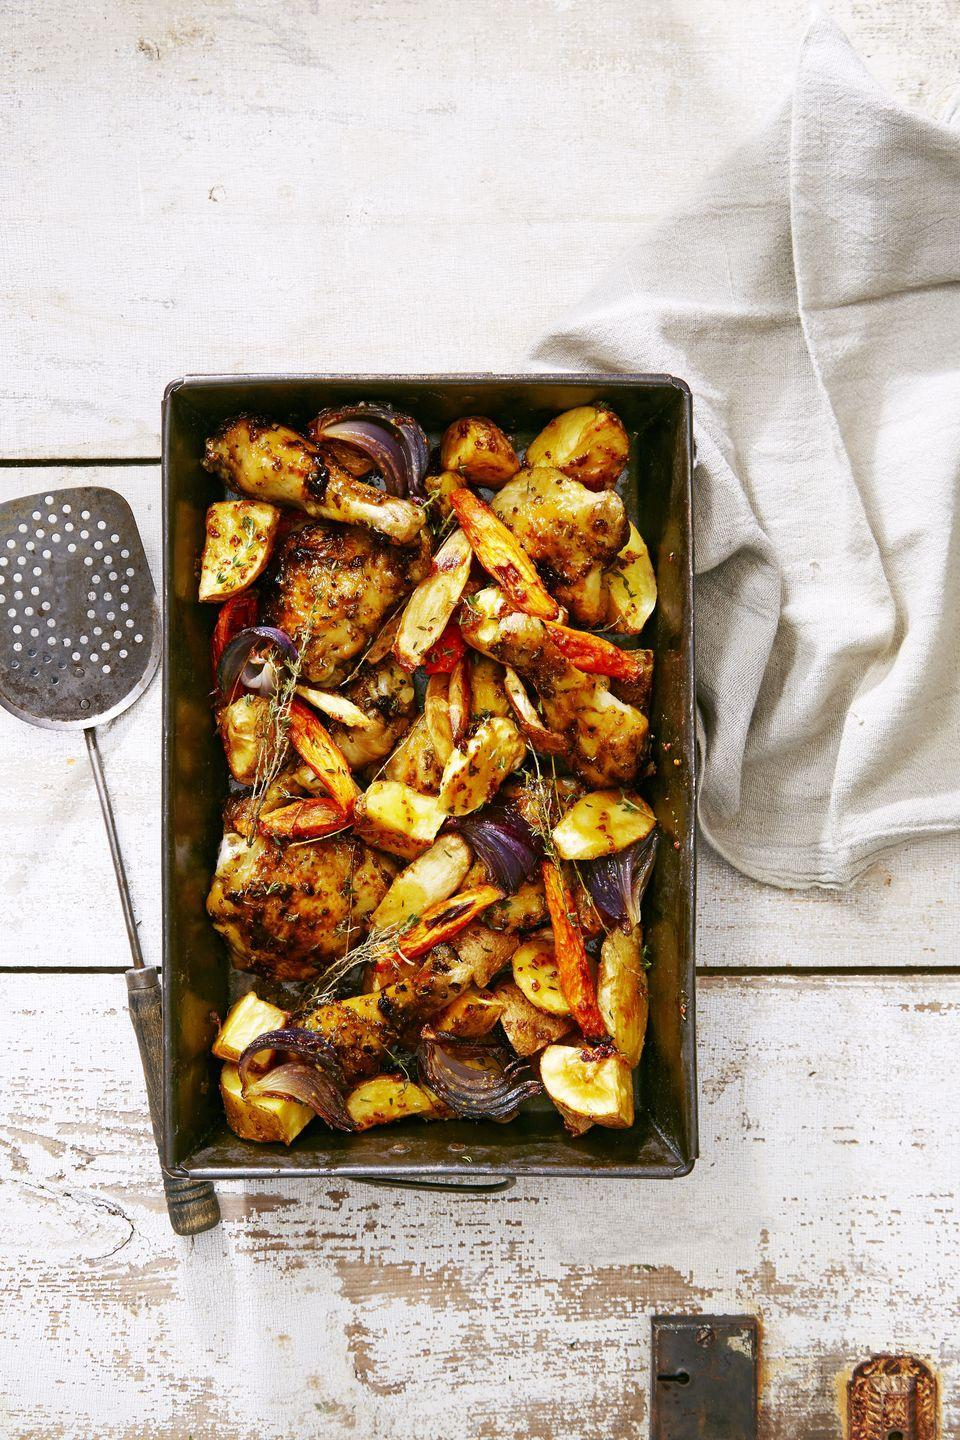 "<p>Can we all agree that honey mustard is the greatest condiment of all time?</p><p><em><a href=""https://www.goodhousekeeping.com/food-recipes/party-ideas/a36629/honey-mustard-glazed-chicken-bake/"" rel=""nofollow noopener"" target=""_blank"" data-ylk=""slk:Get the recipe for Honey Mustard-Glazed Chicken Bake »"" class=""link rapid-noclick-resp"">Get the recipe for Honey Mustard-Glazed Chicken Bake »</a></em></p>"